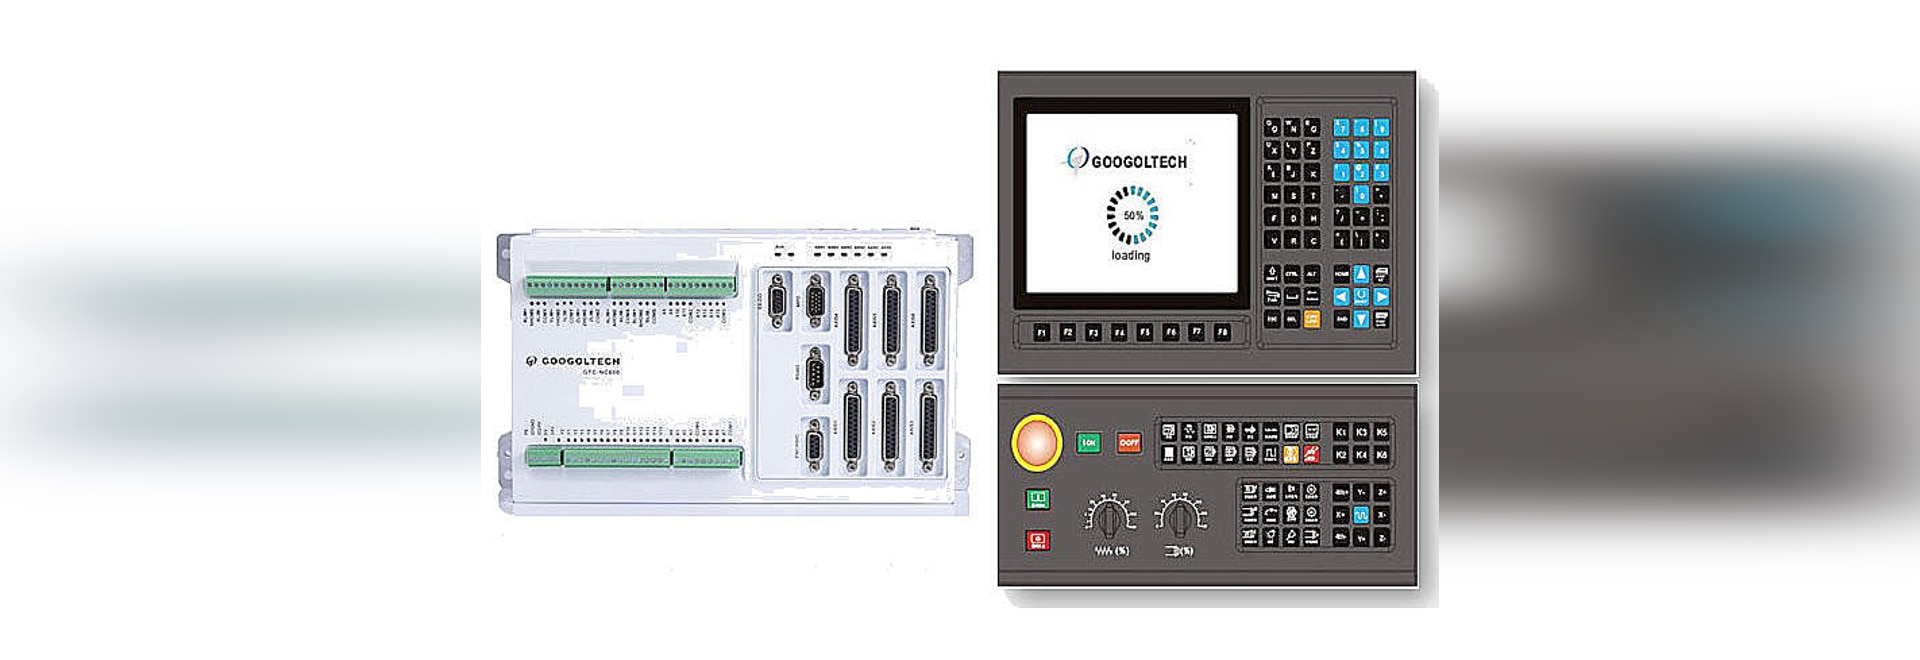 NEW ! High performance CNC control system for 3-axis CNC milling-drilling machine